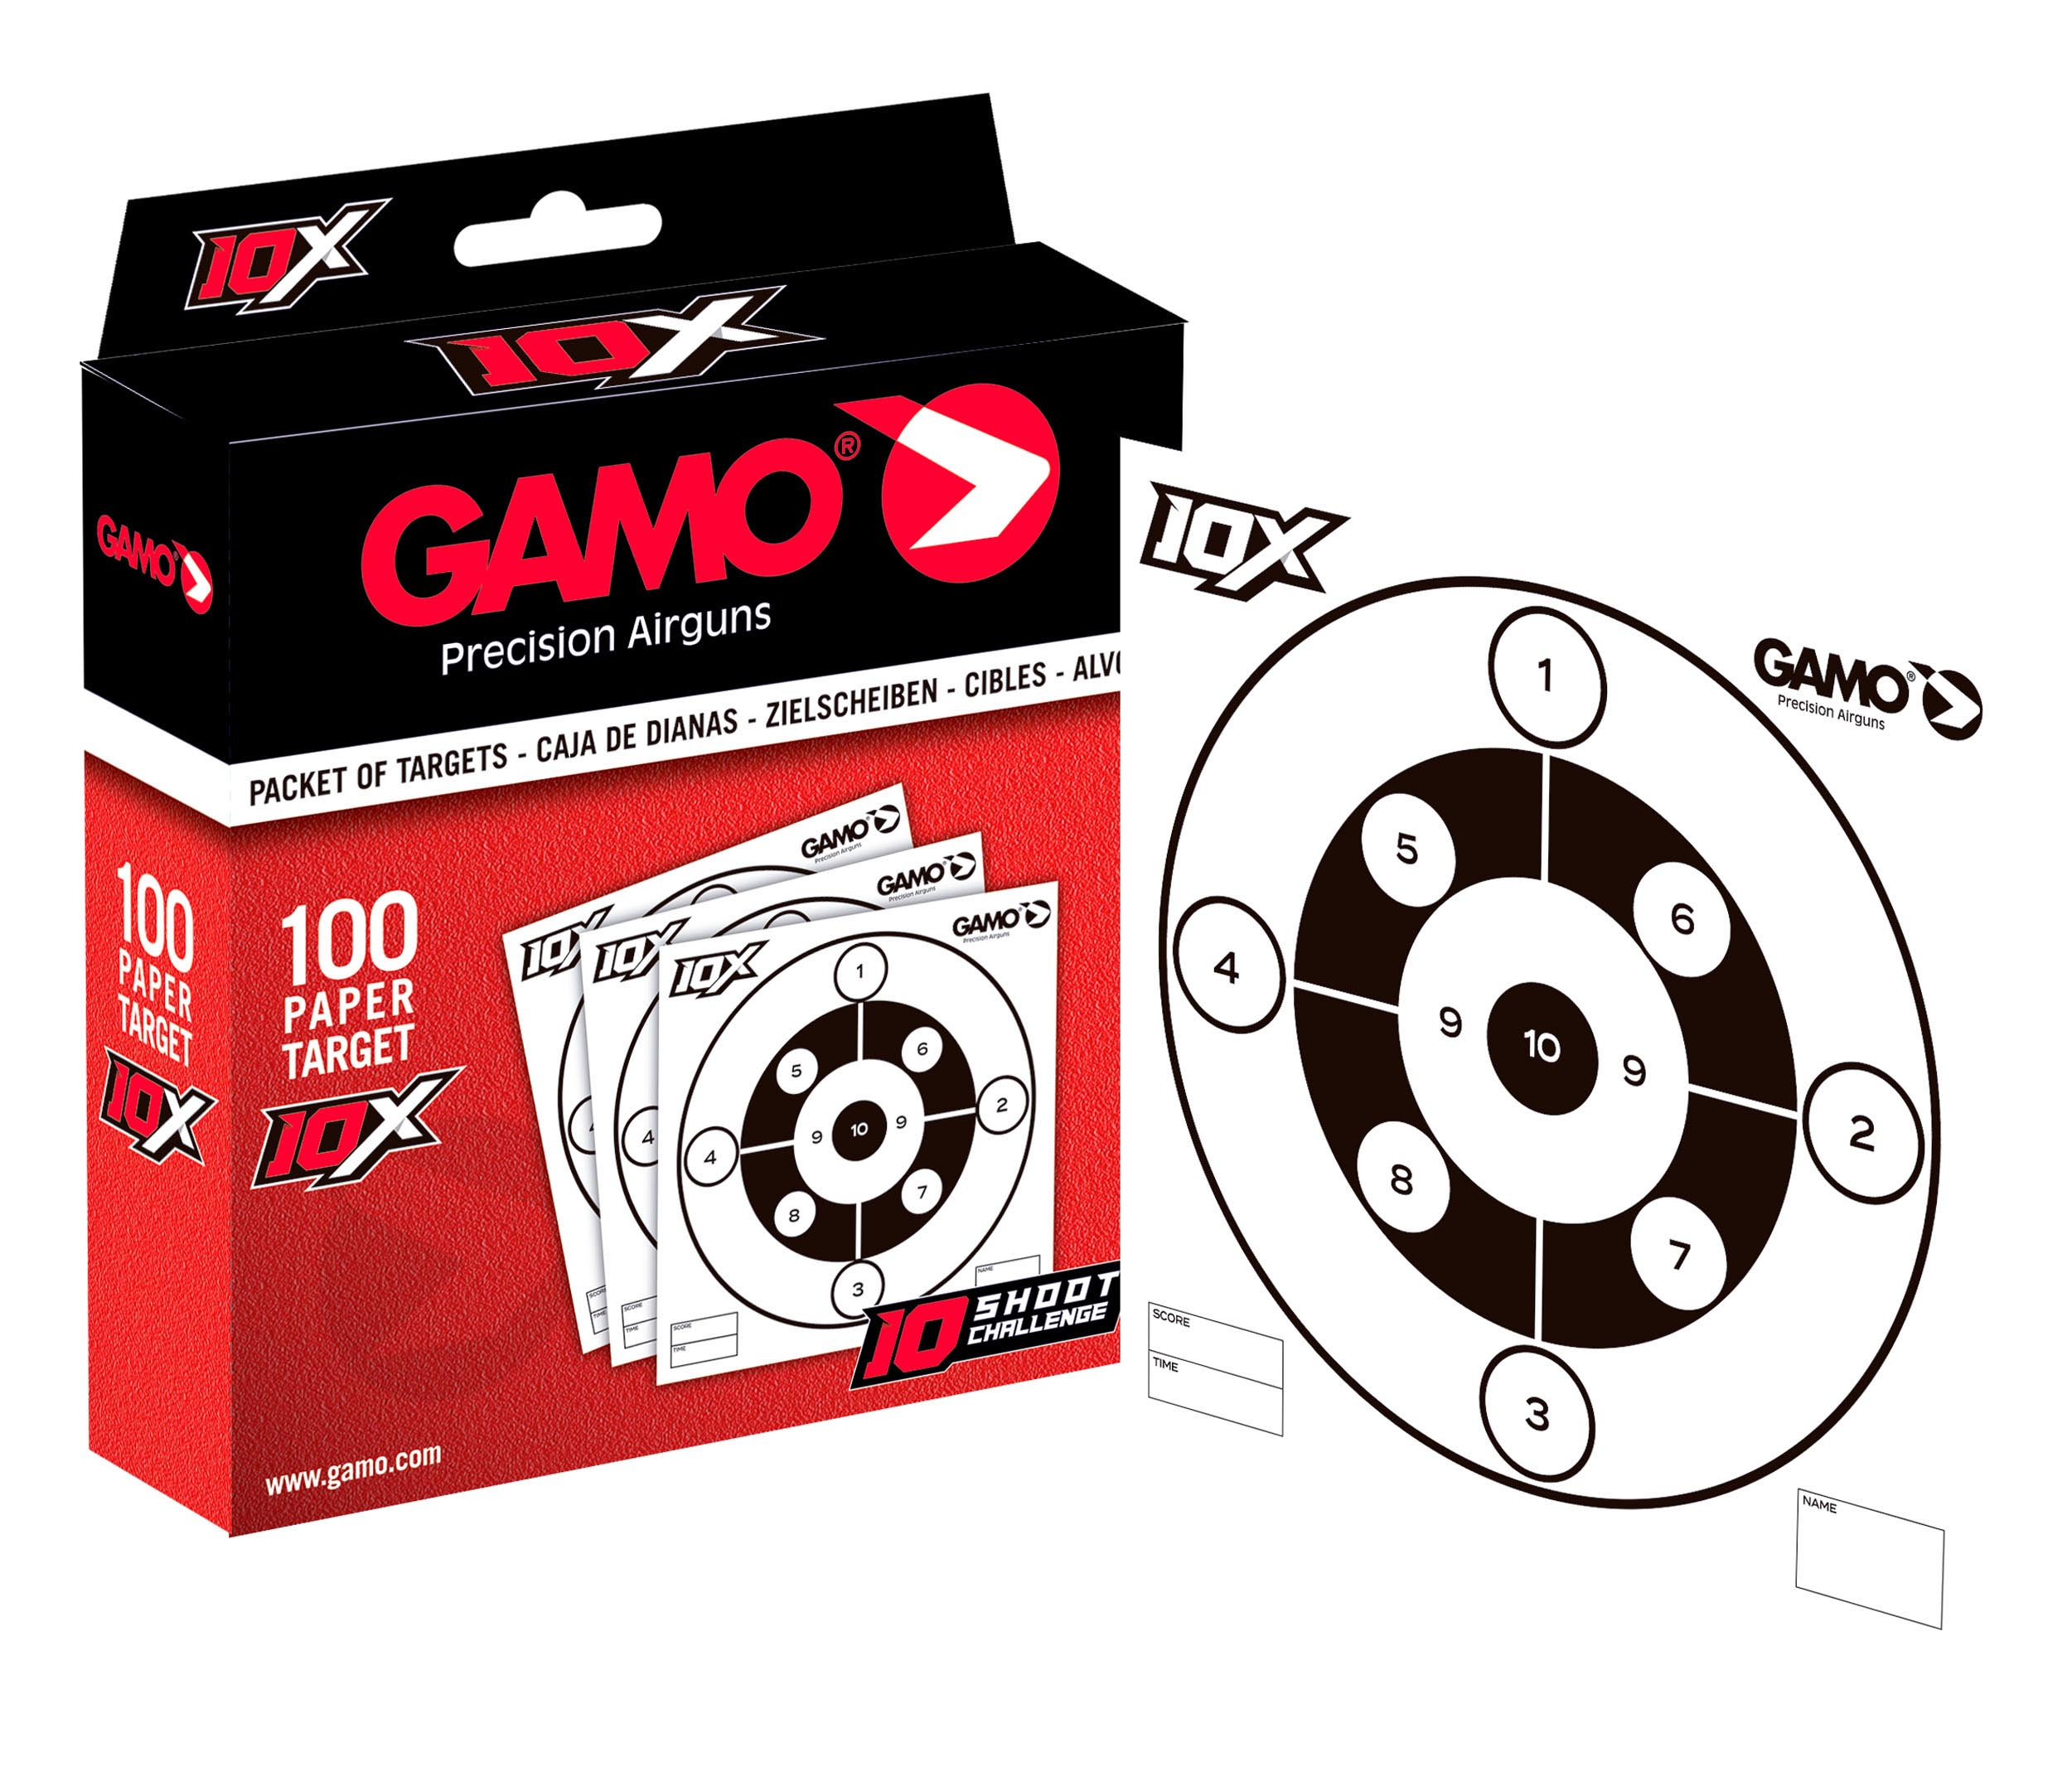 G5105 Pack Cherry GAMO 2020 - Pack Swarm Fox 10X 4,5mm synthetic. - GAMO Swarm rifle - PACKSWARM